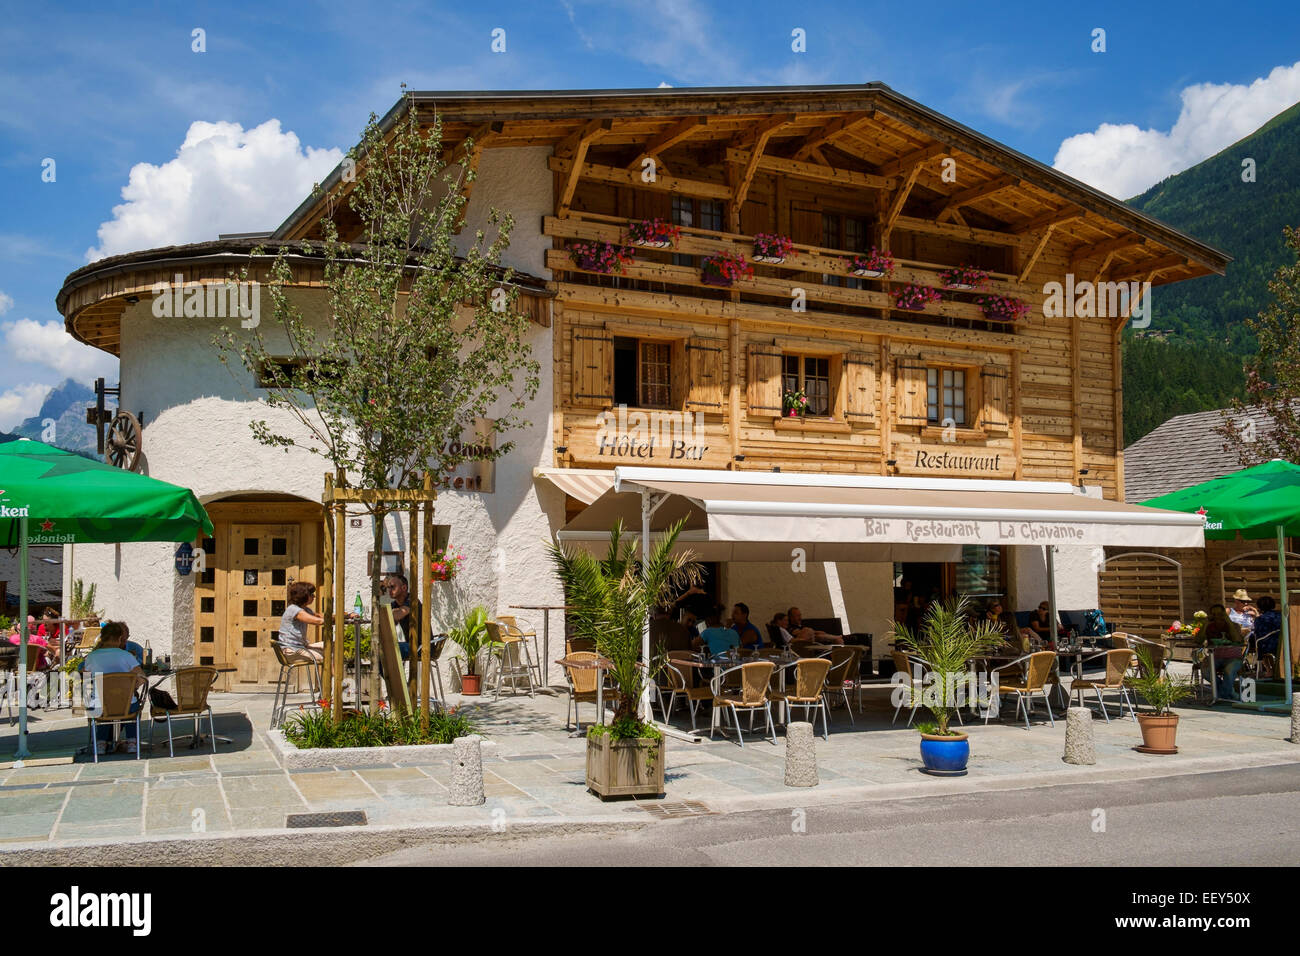 Hotel bar cafe in Les Houches ski resort, Chamonix, French Alps, Haute-Savoie, France, Europe - Stock Image